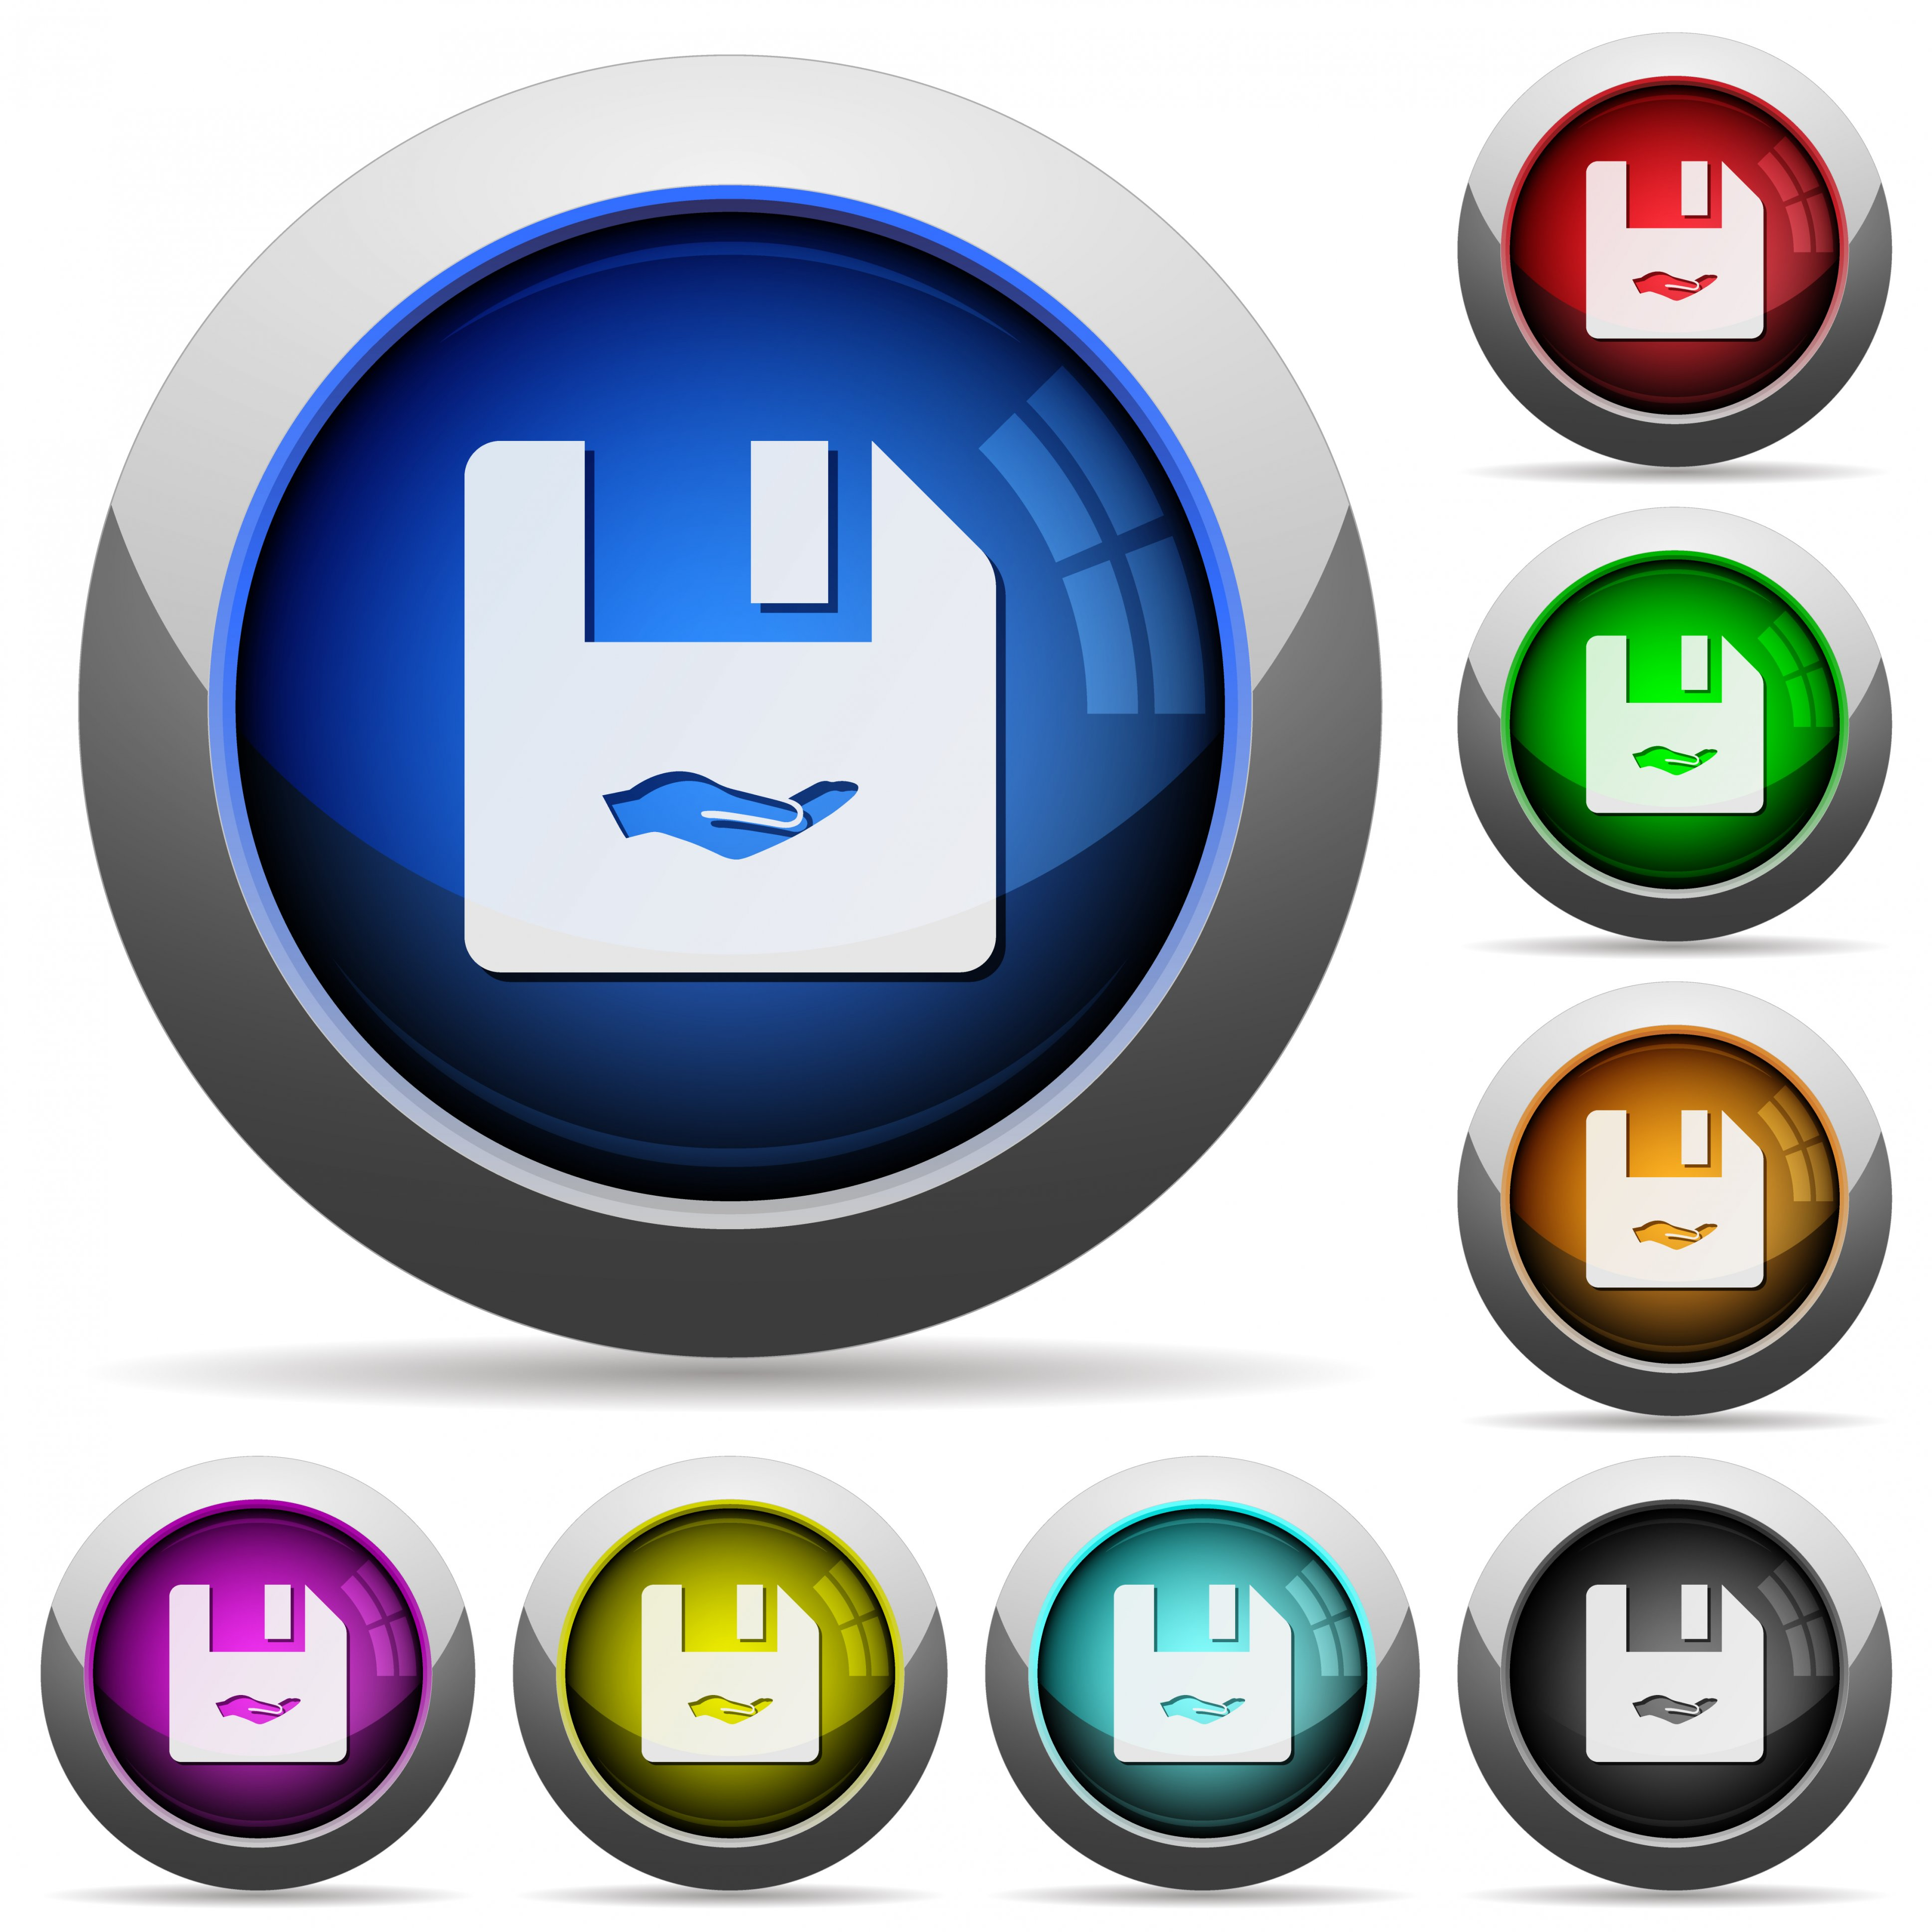 Share file icons in round glossy buttons with steel frames - Free image